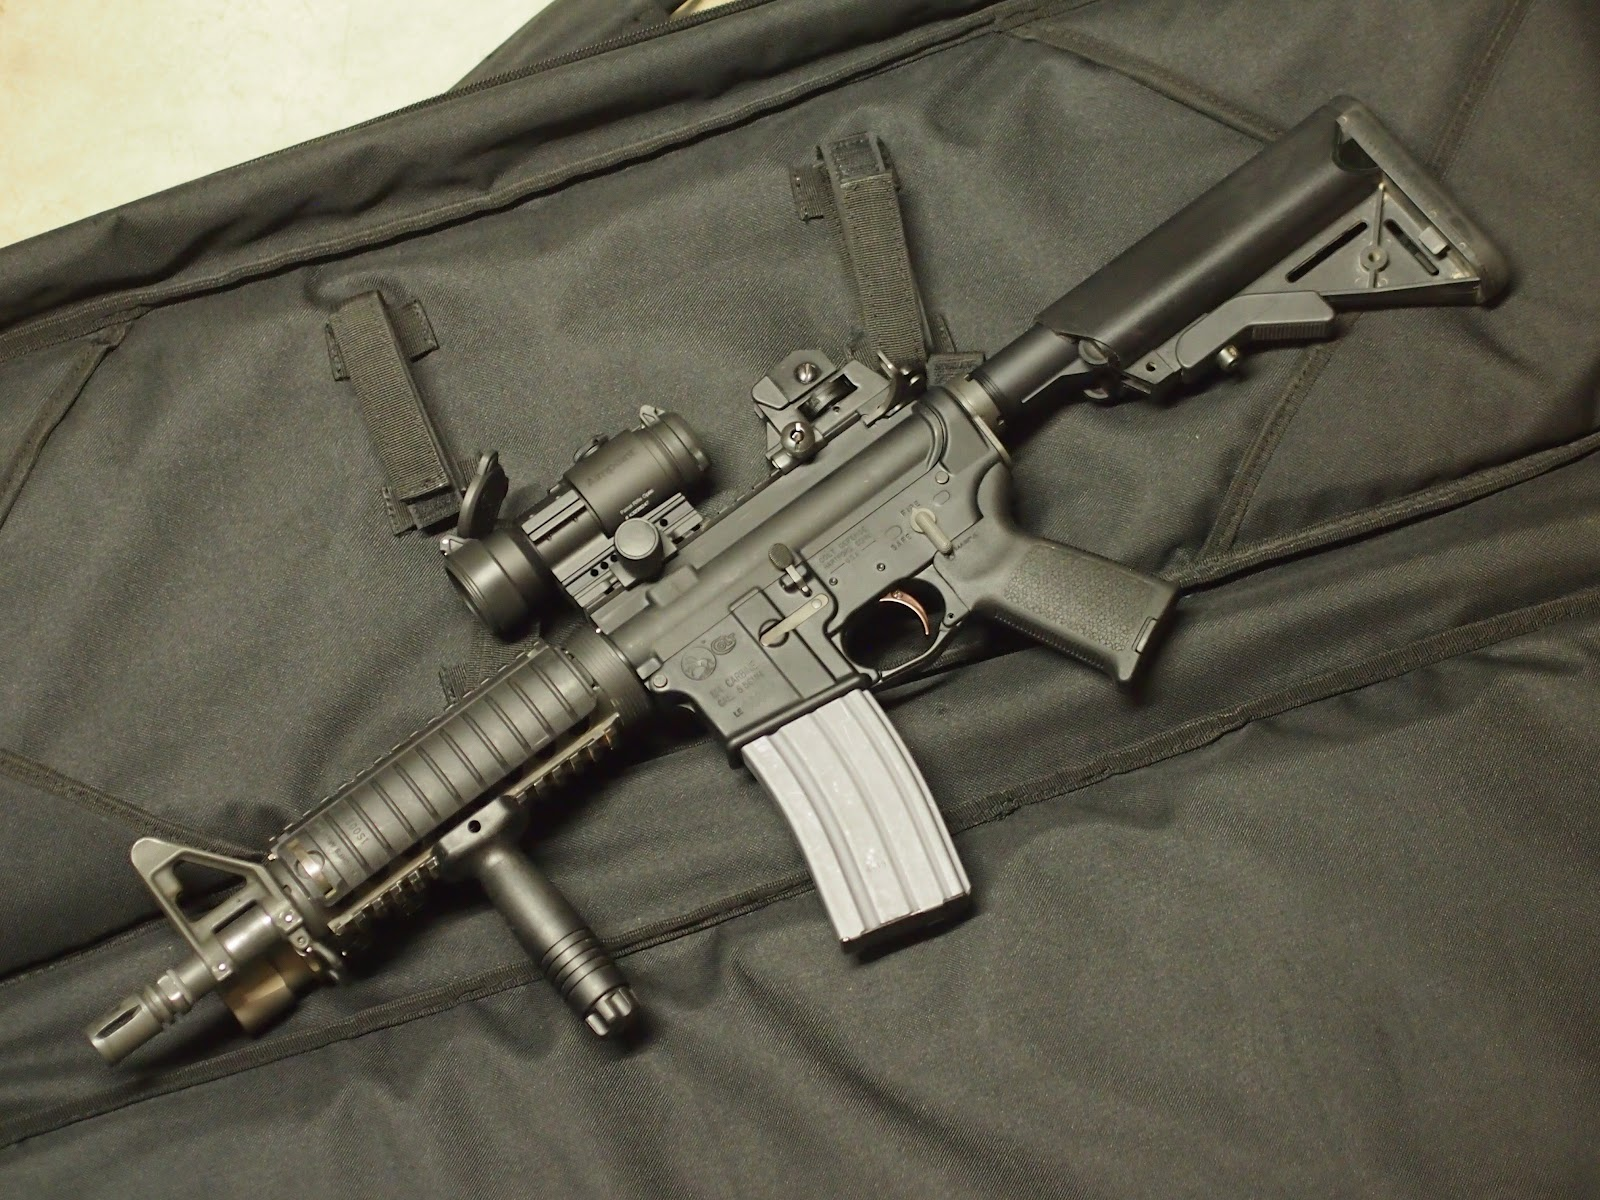 The Armed Jolly Green Giant: Mk18 Mod 0 Clone